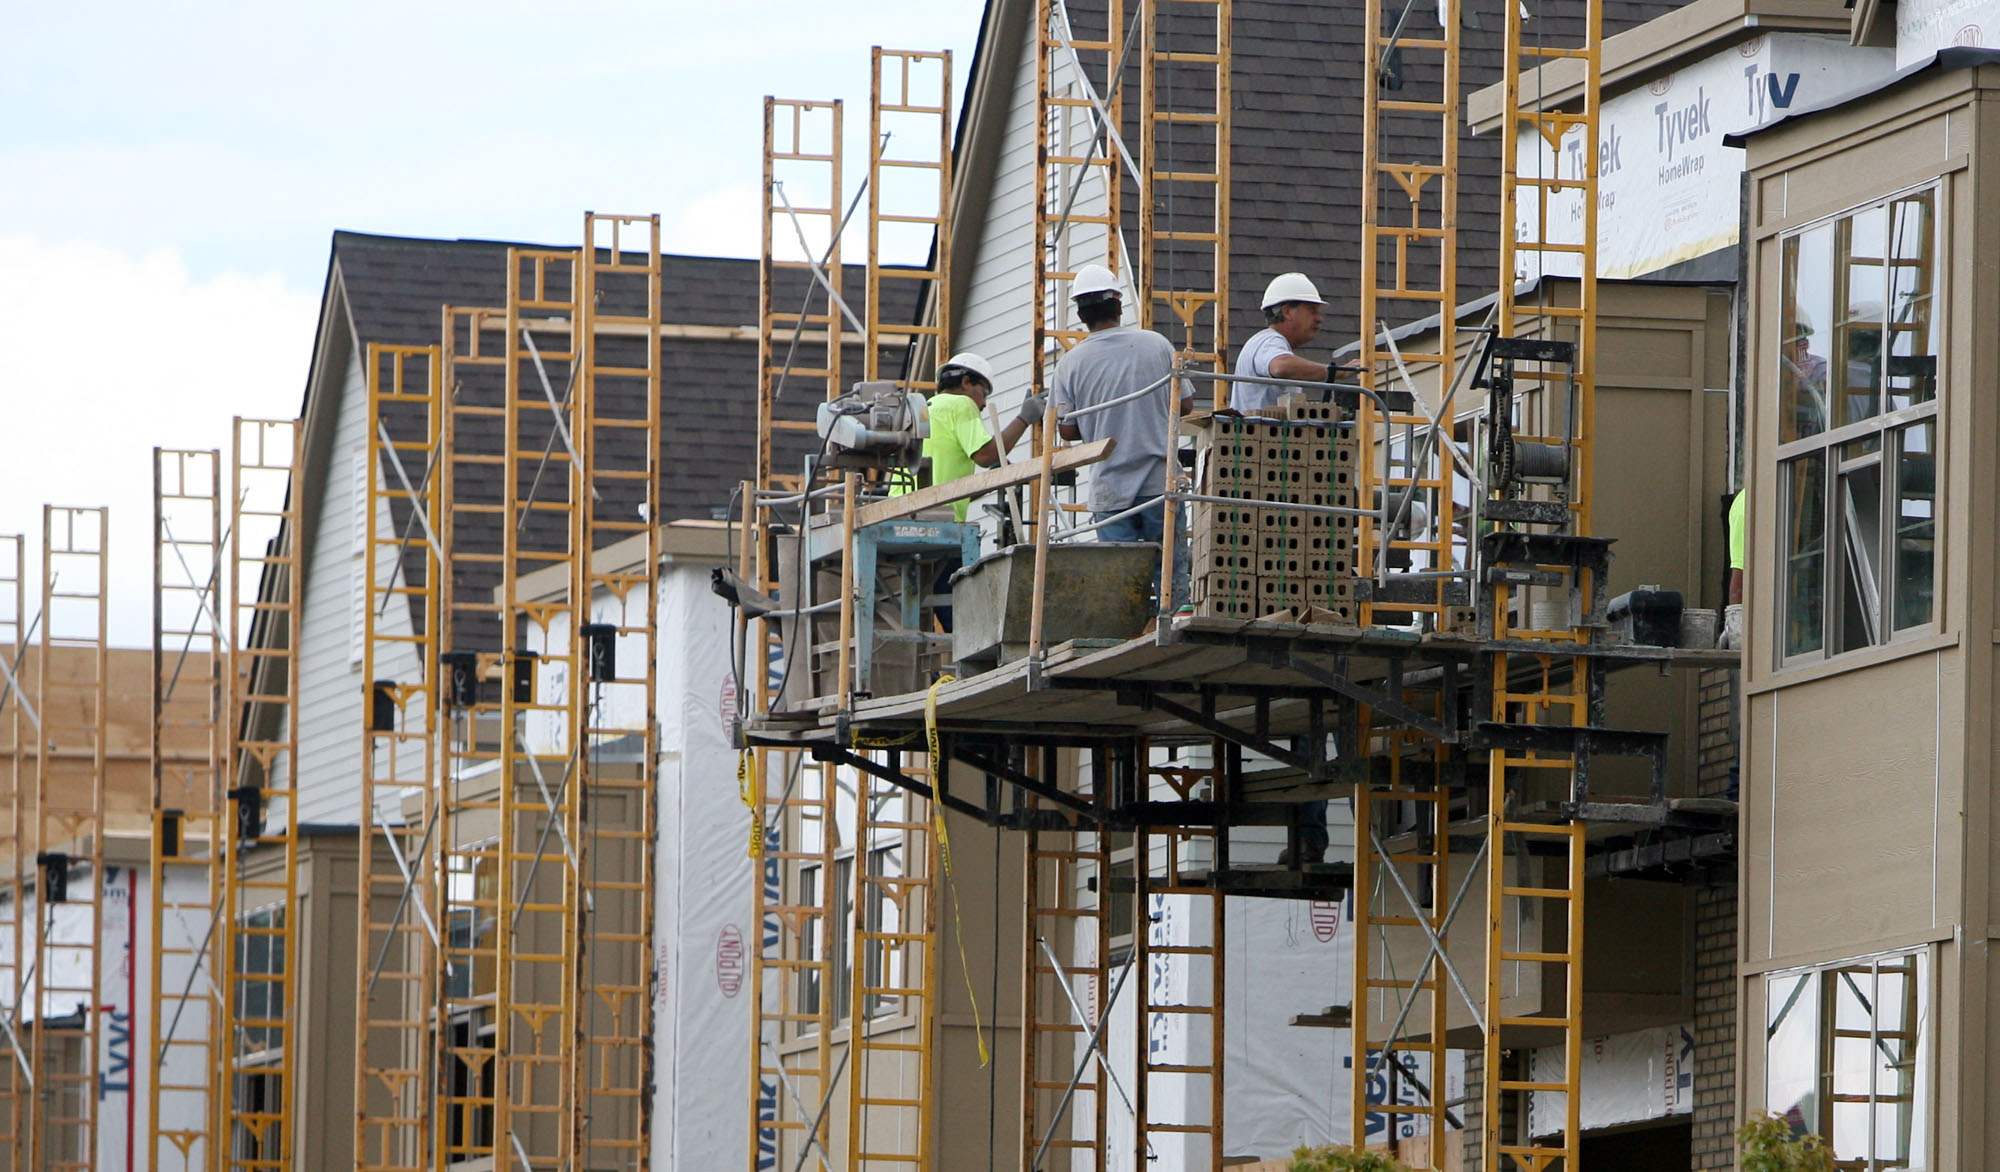 Photo: Condominiums in Lakewood (AP Photo)